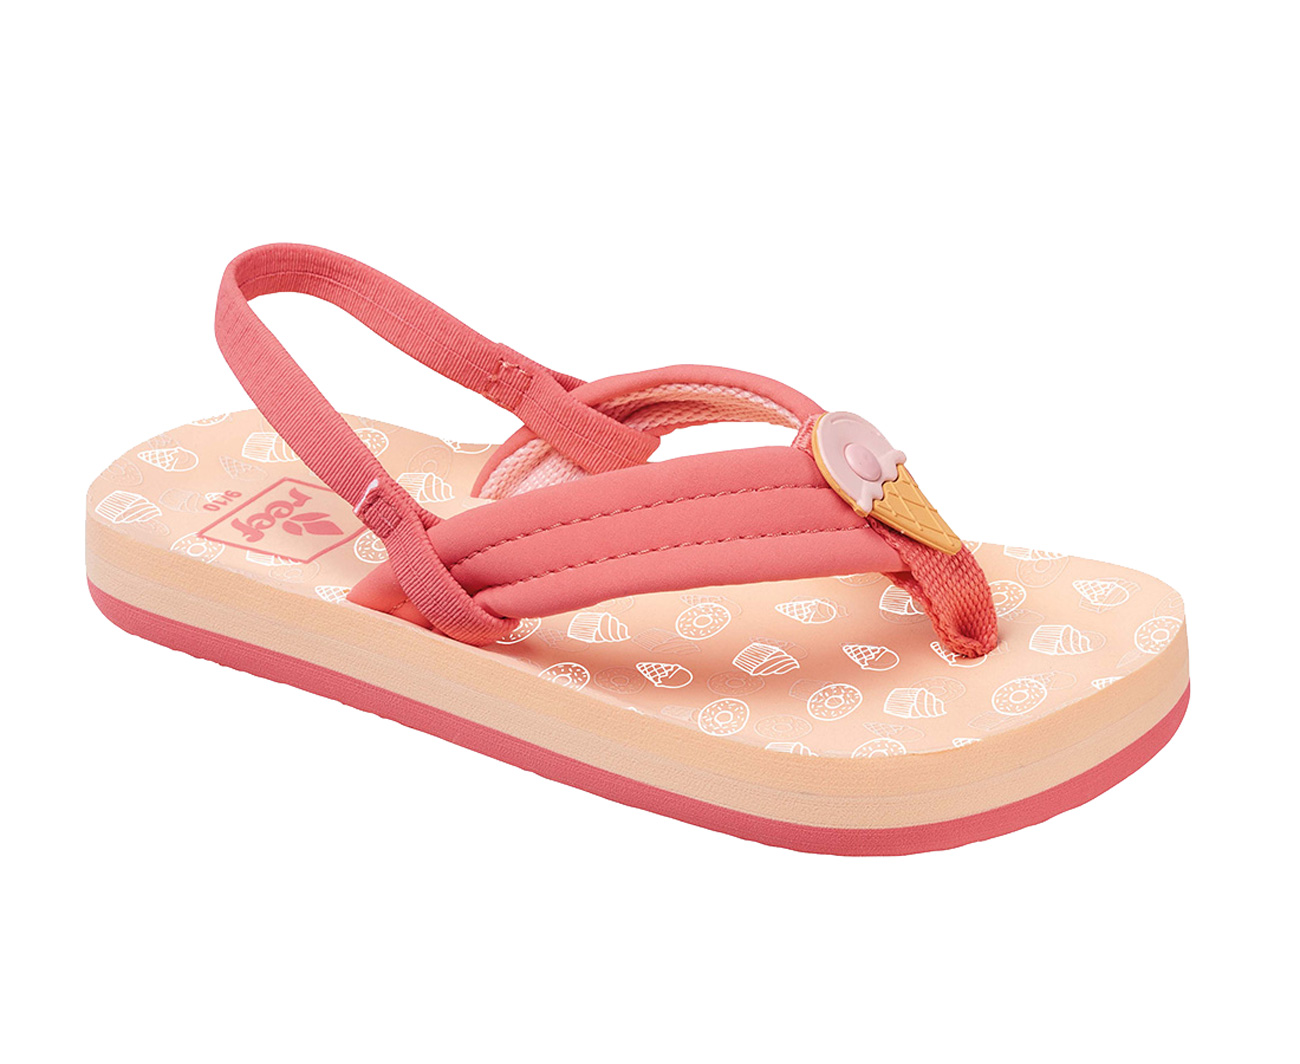 7e5e9f4d4 Sentinel Reef Kids Sandals - Little Ahi Scents - Flip Flops